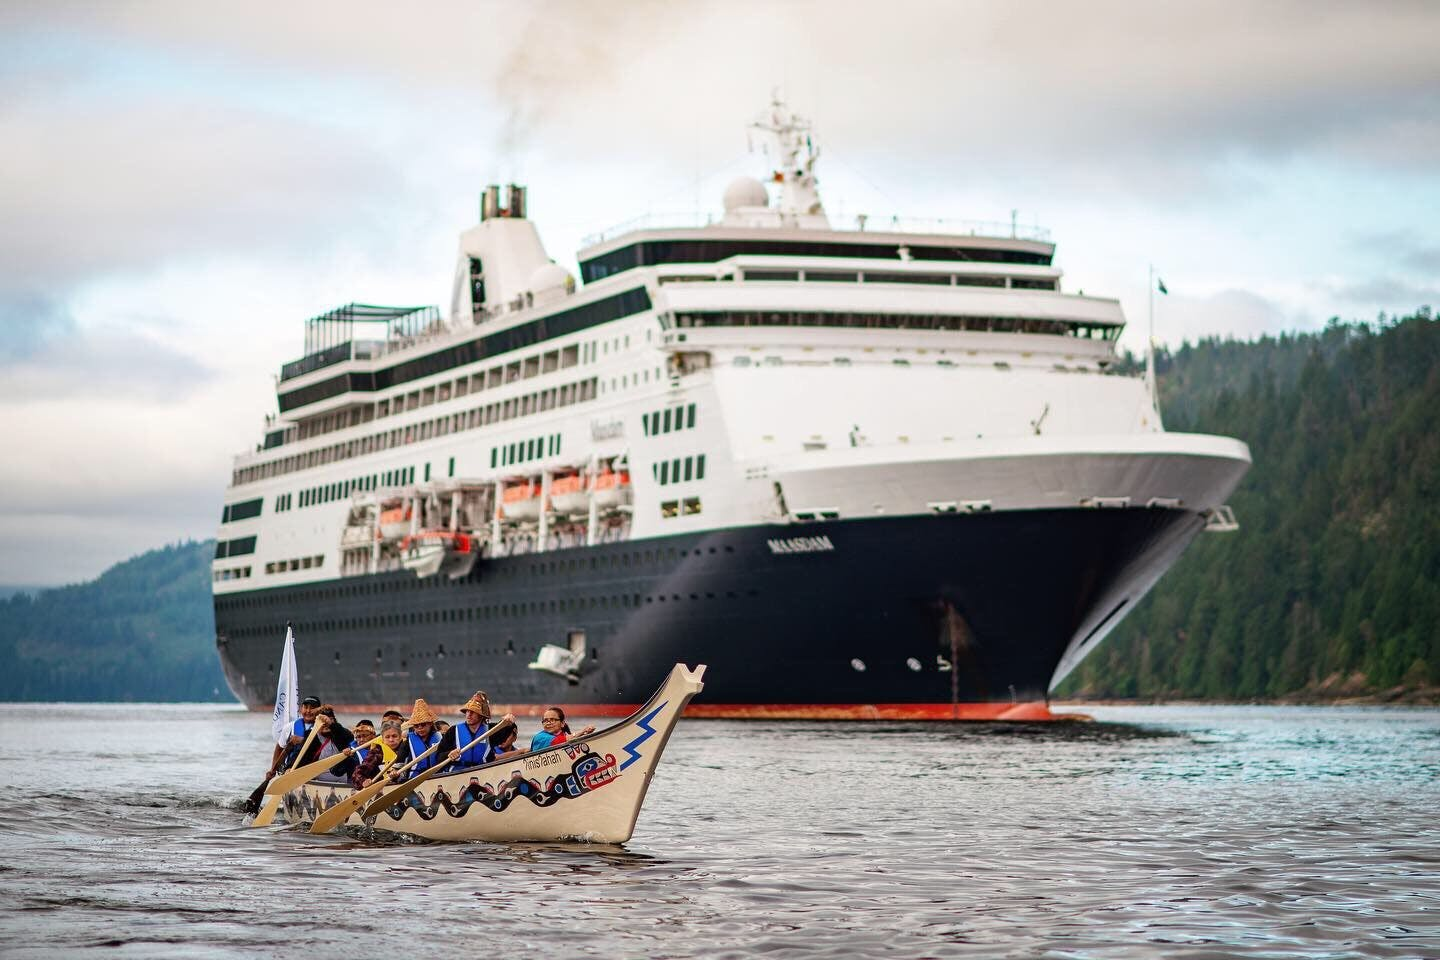 Tseshaht First Nation welcoming the MS Maasdam to Port Alberni